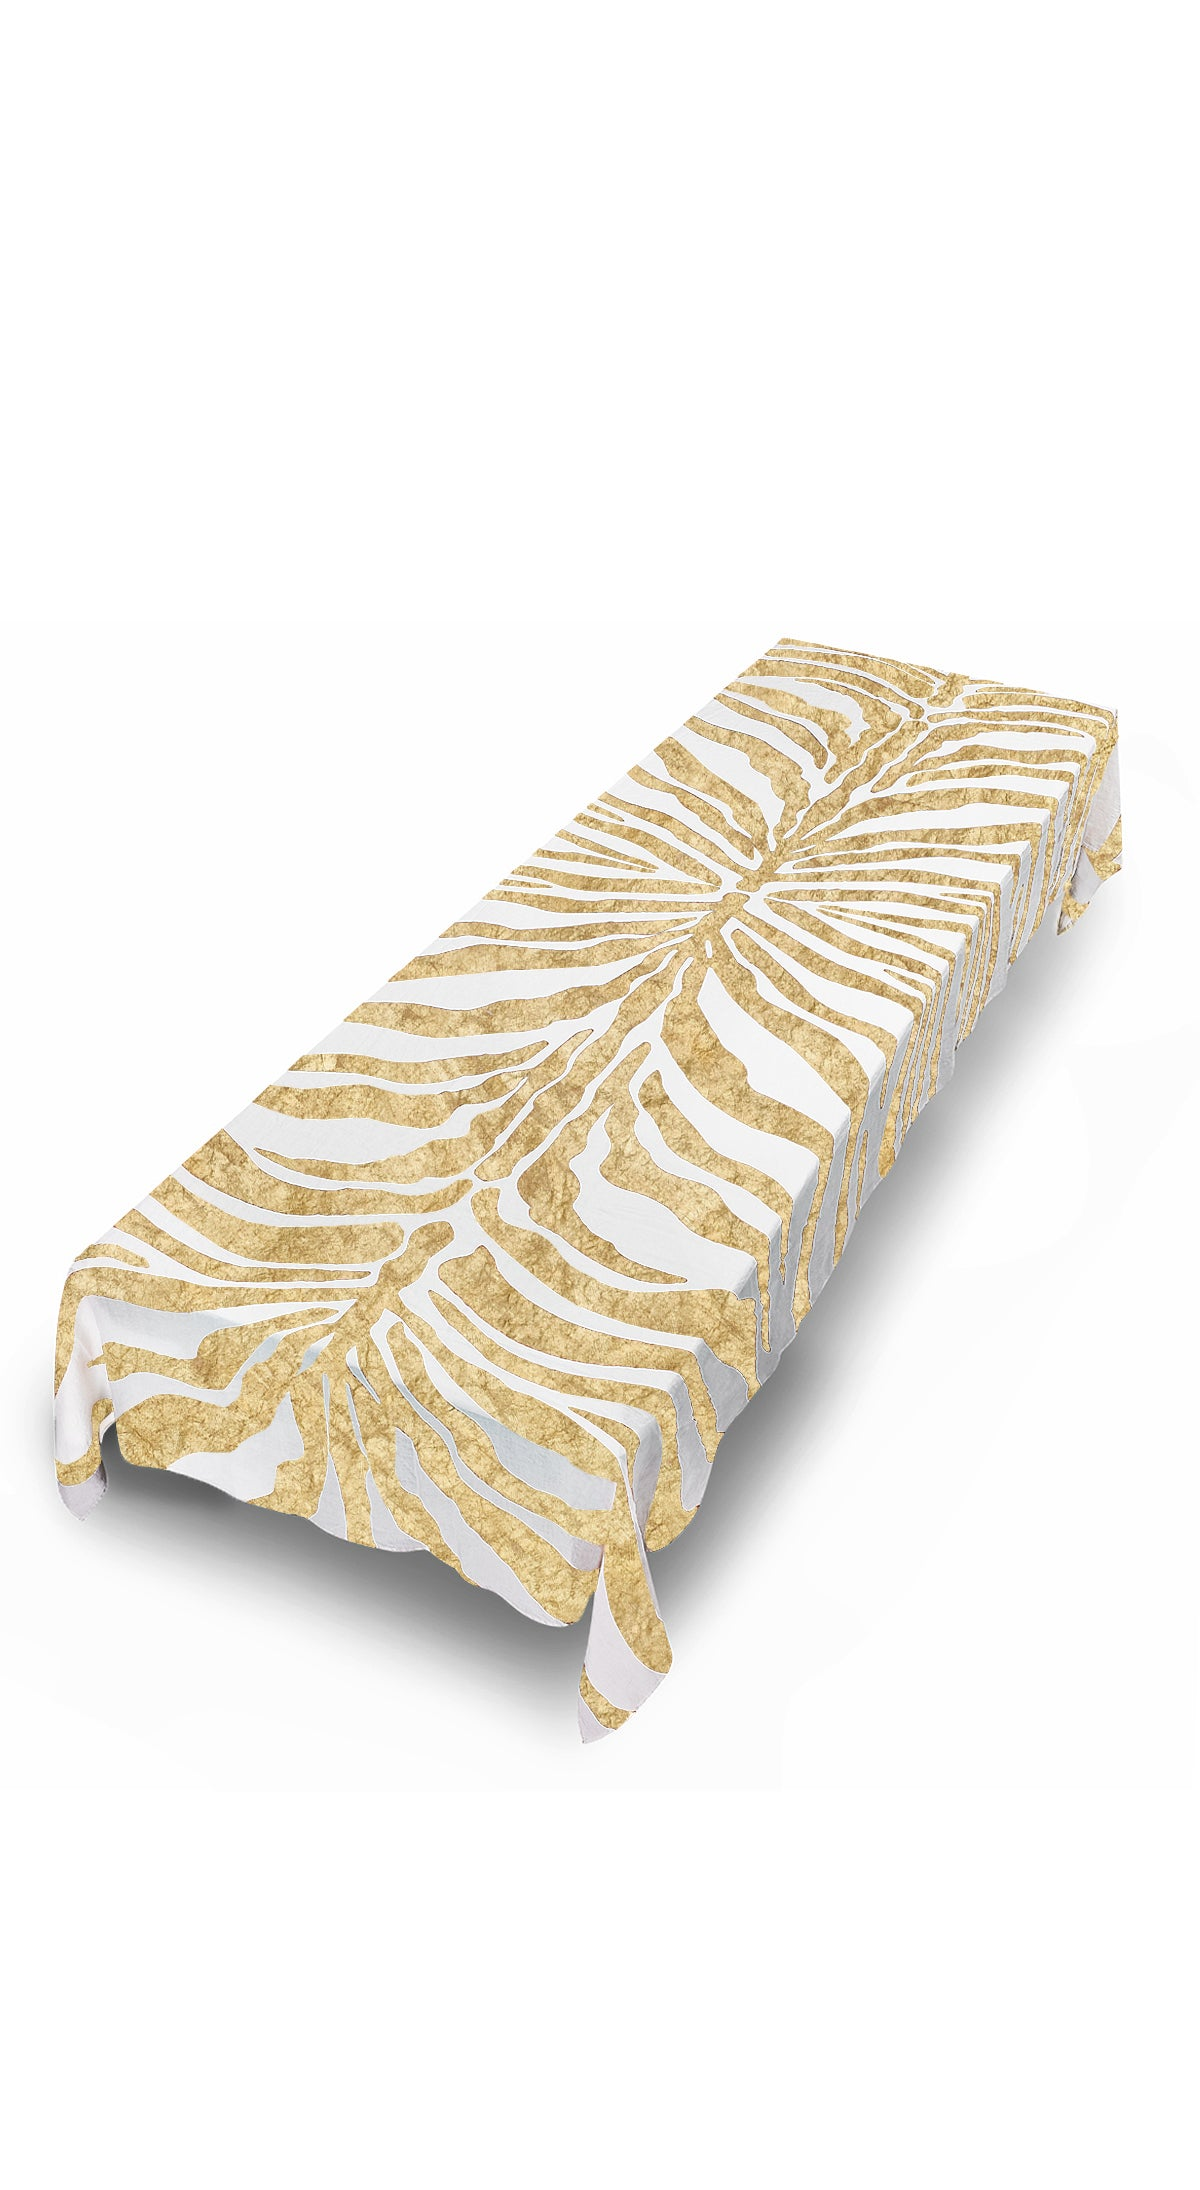 Hand Painted Zebra Linen Tablecloth in Gold